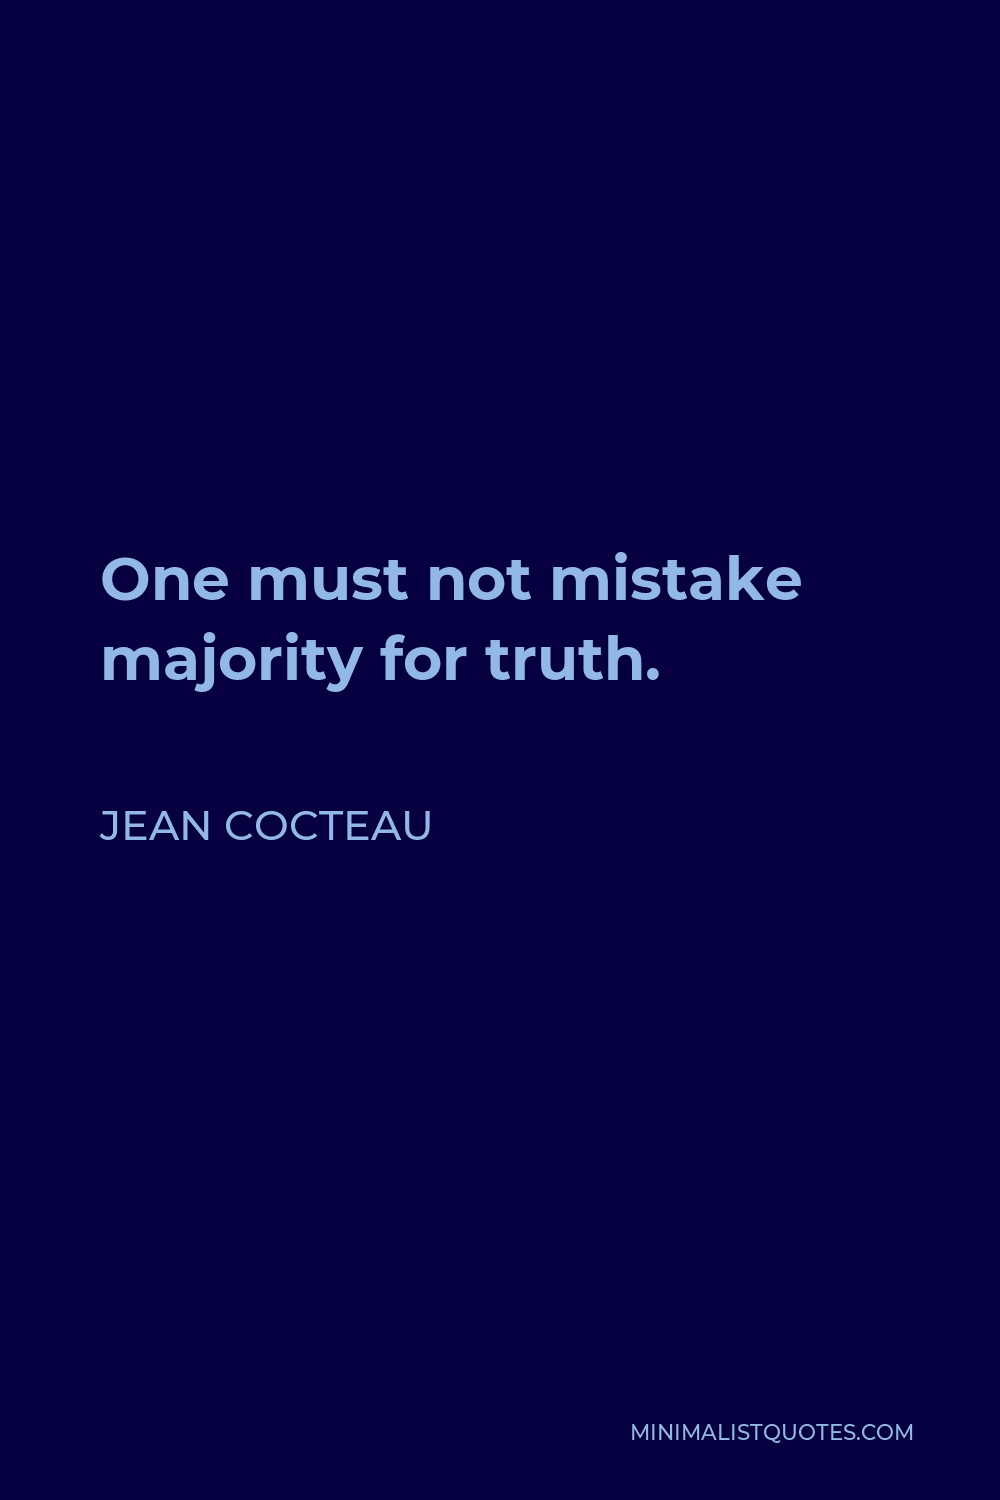 Jean Cocteau Quote - One must not mistake majority for truth.